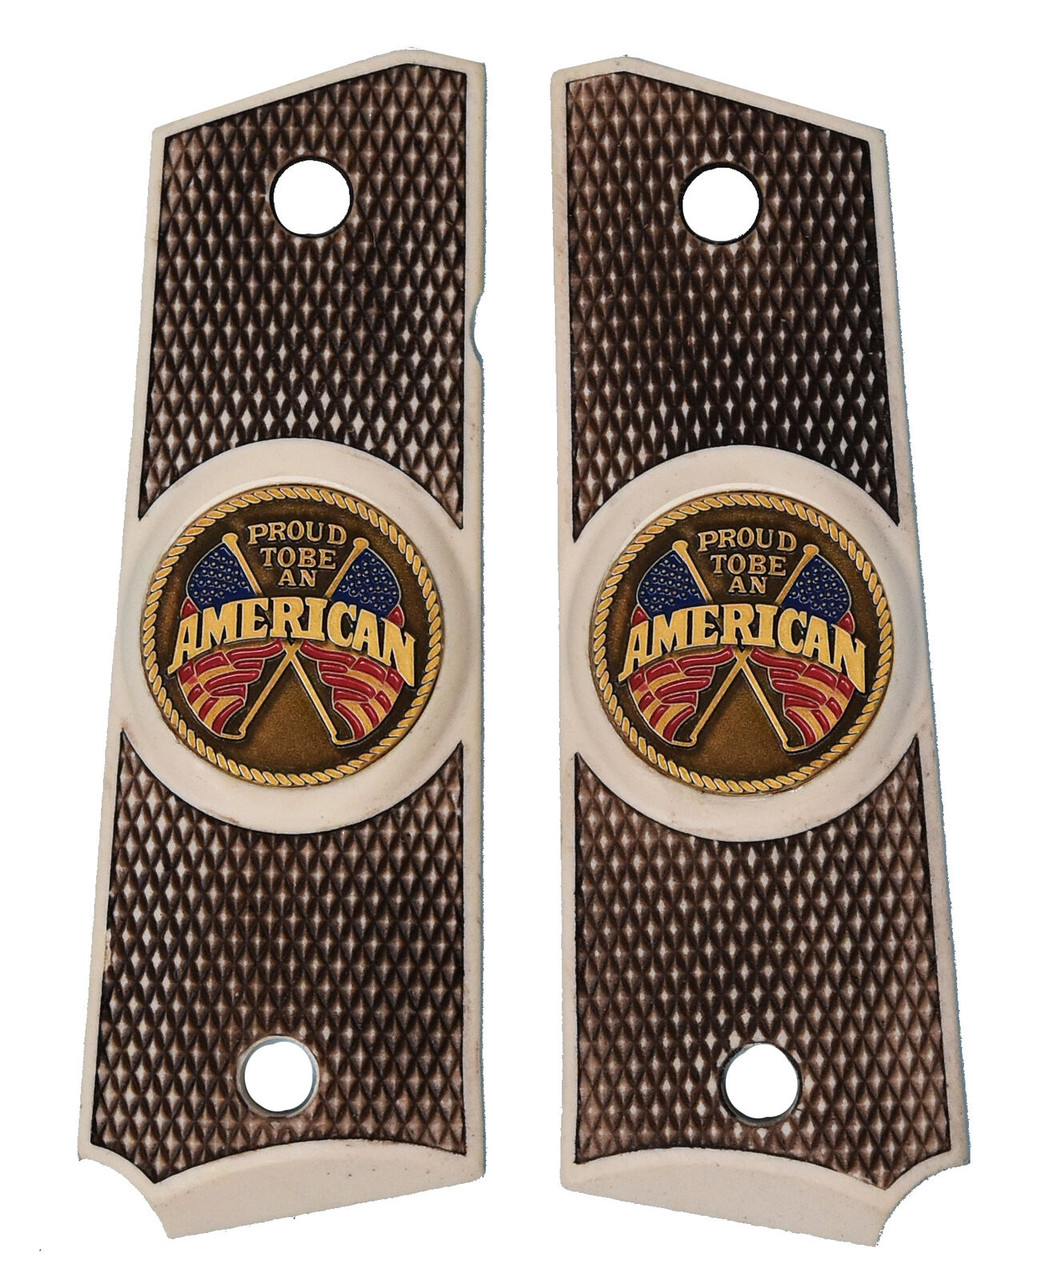 Garrison Grip 1911 Colt Full Size and Clones with PROUD TO BE AN AMERICAN Medallion Set in Faux Bone Color Polymer Grips